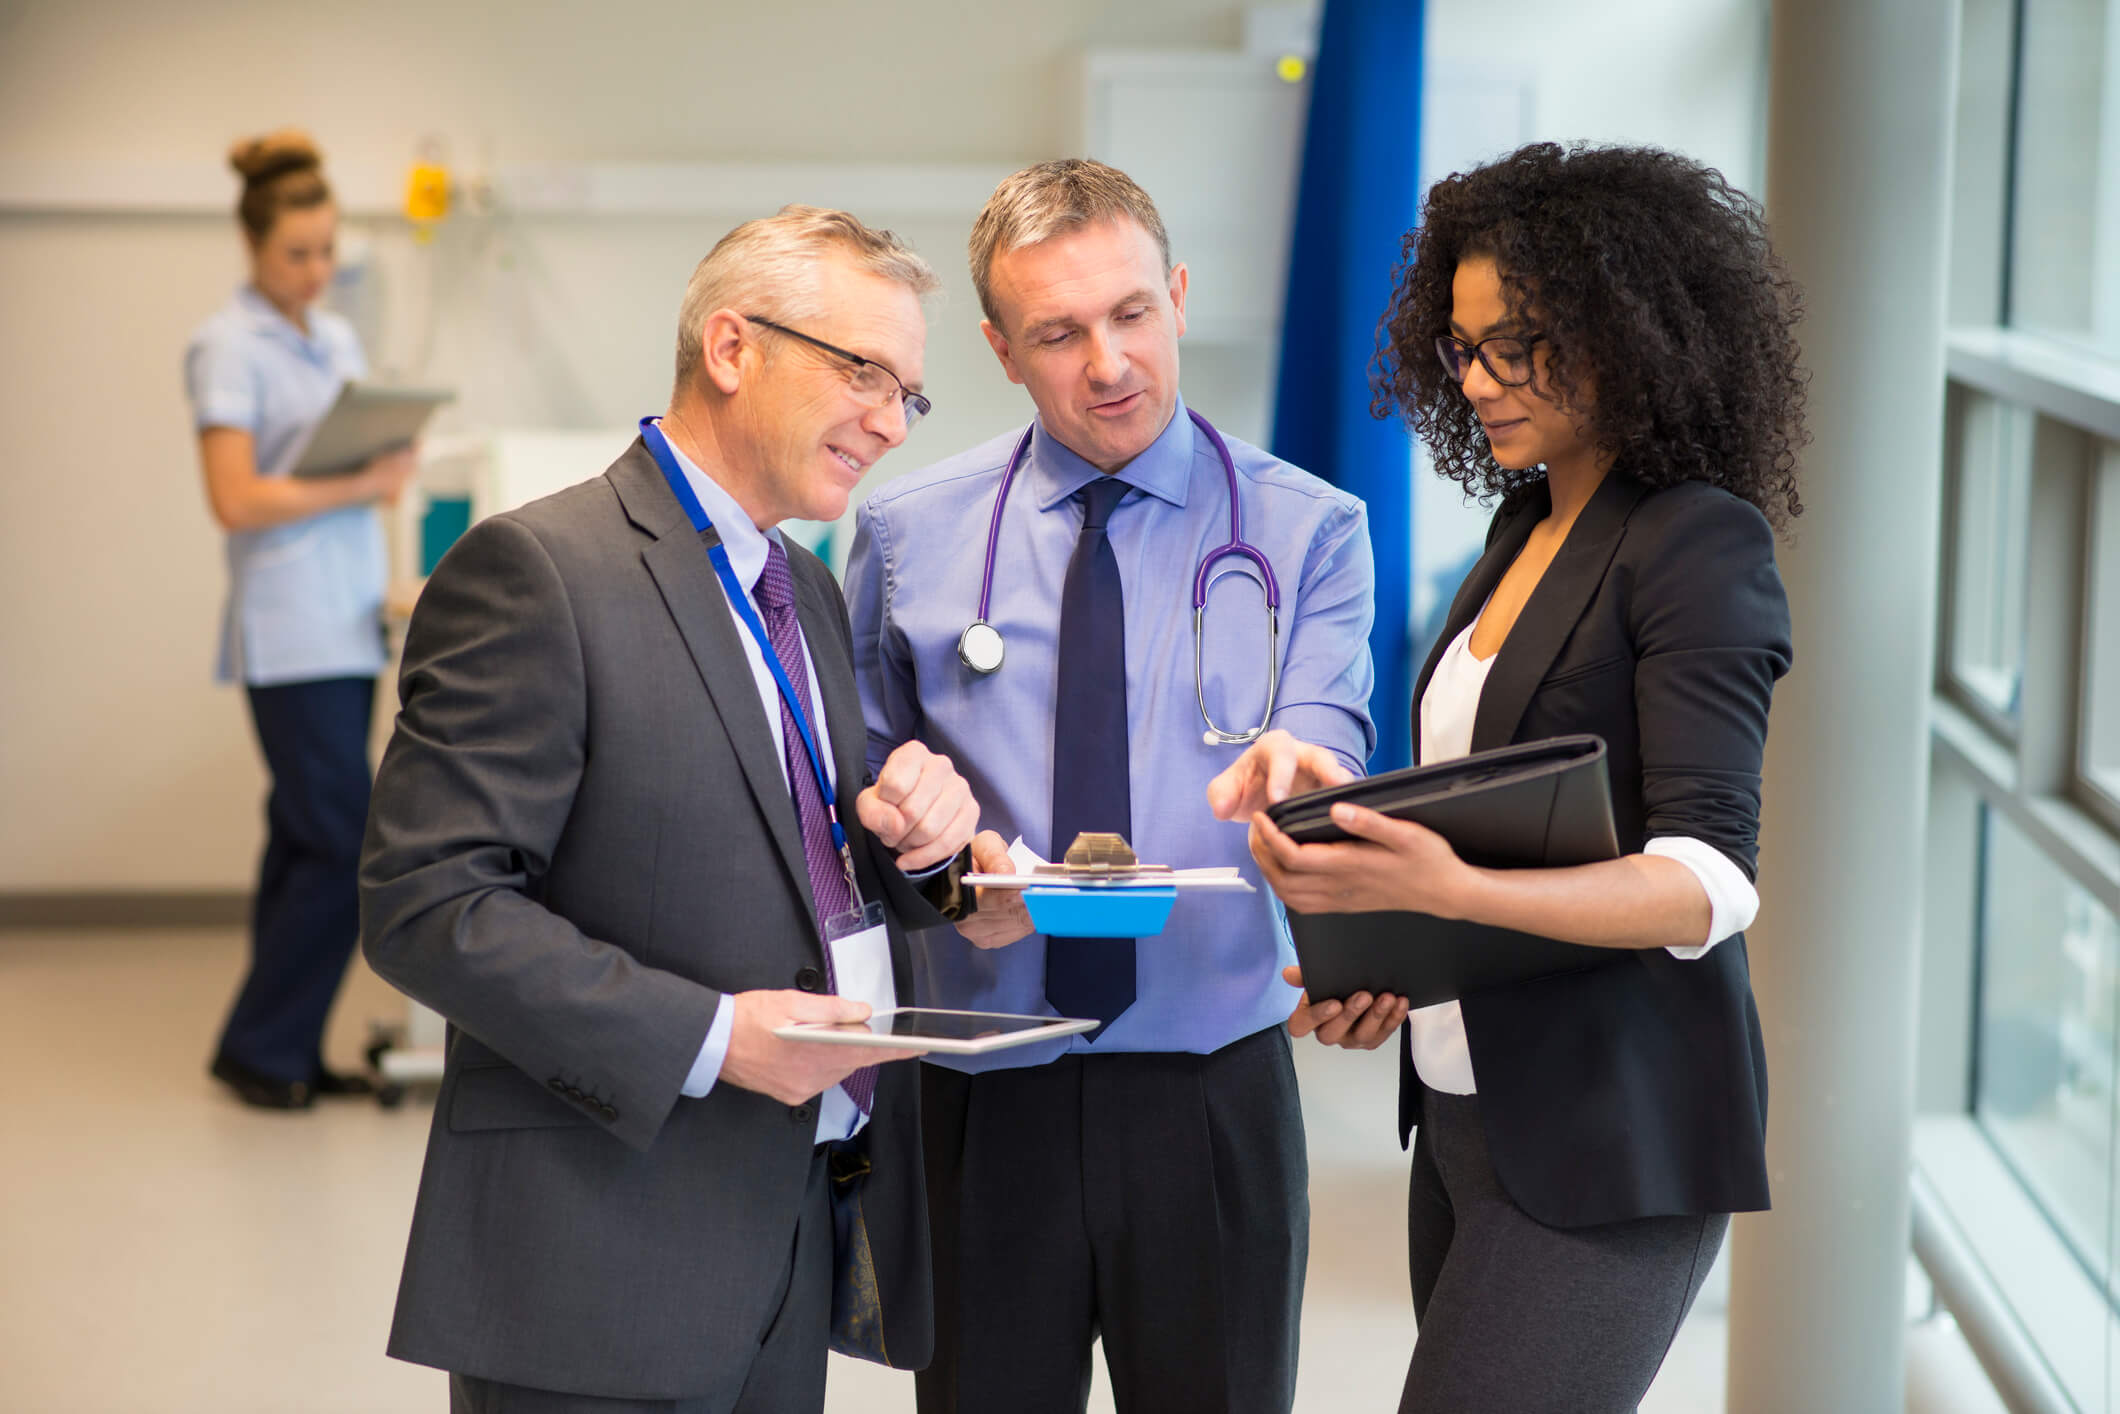 a doctor reviewing paperwork with two people in suits